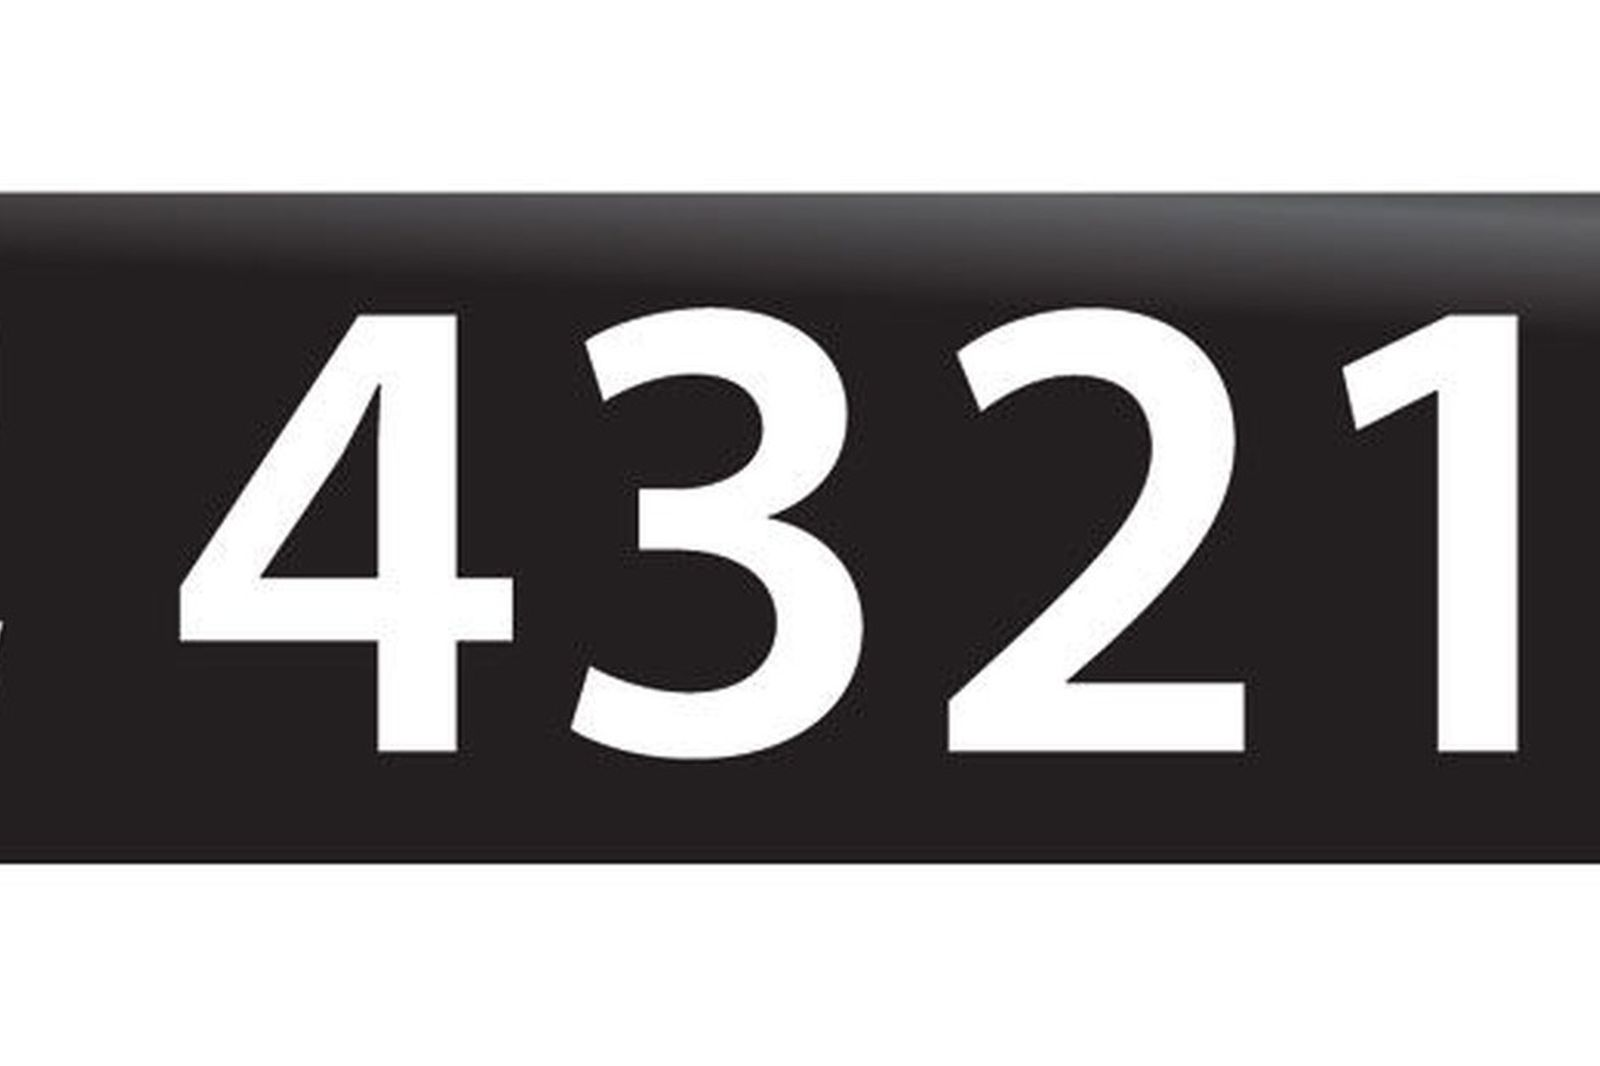 RTA NSW Numerical Number Plates '4321'